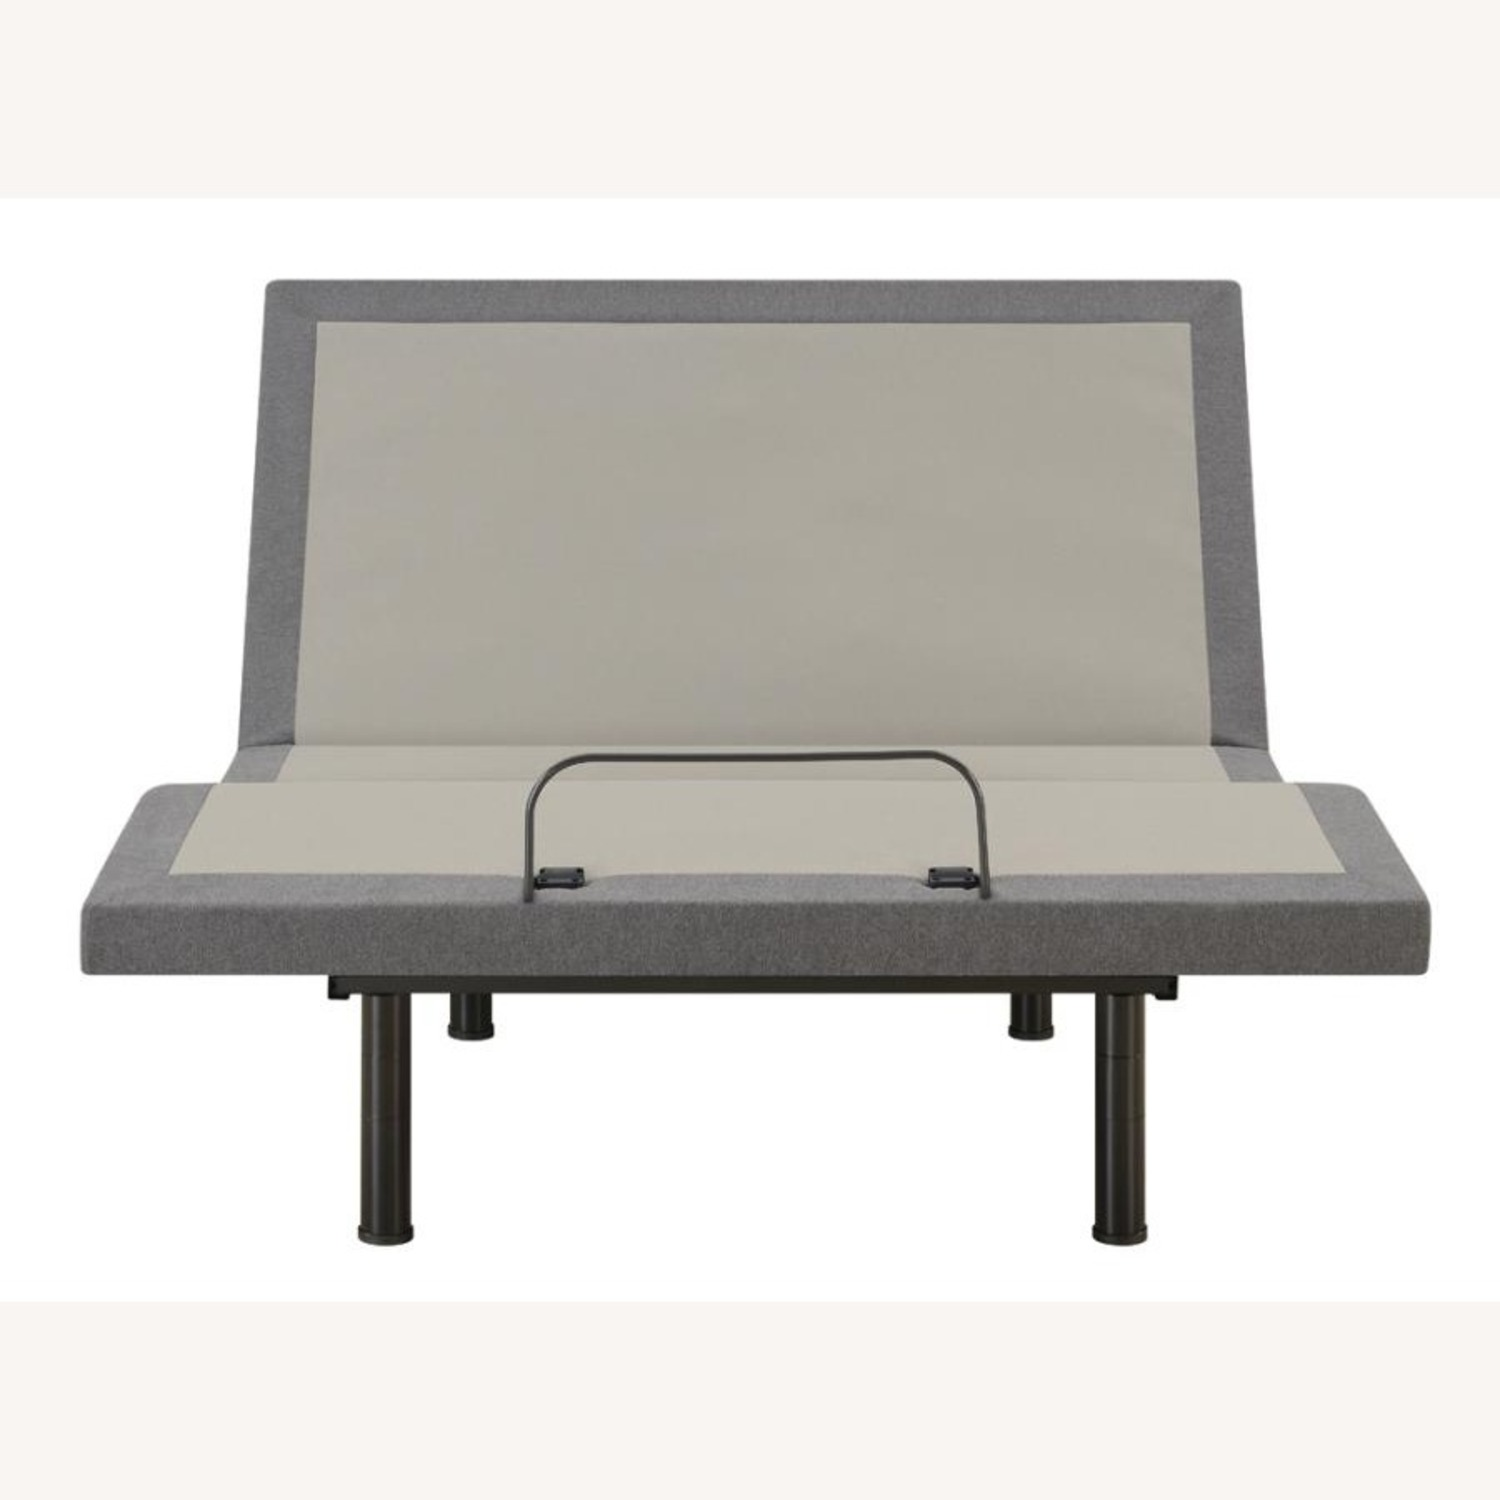 Adjustable King Bed Base In Grey Fabric - image-1